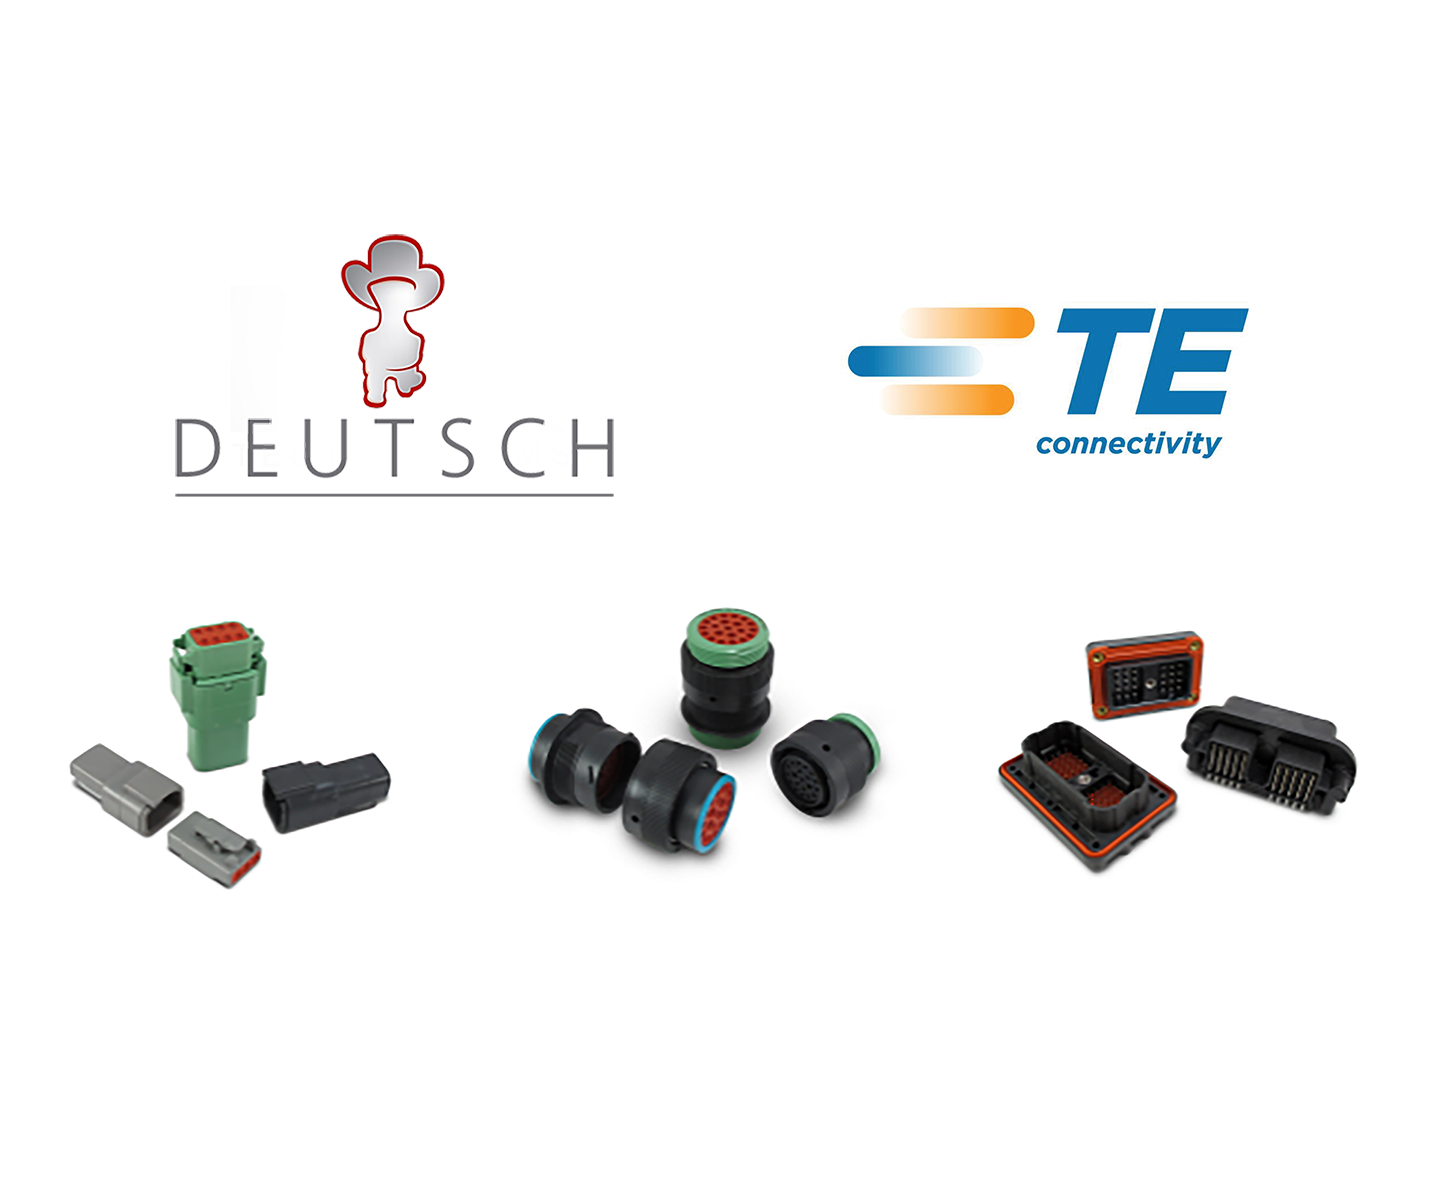 Deutsch / TE Connectors, Backshells, Contacts and Tools TE's DEUTSCH products have reliably performed in some of the harshest environments. For aerospace, defense, marine, industrial commercial transportation, and rail, TE provides a robust product line of DEUTSCH products that include wires, connectors, contacts, accessories, and sub-sea power cables.